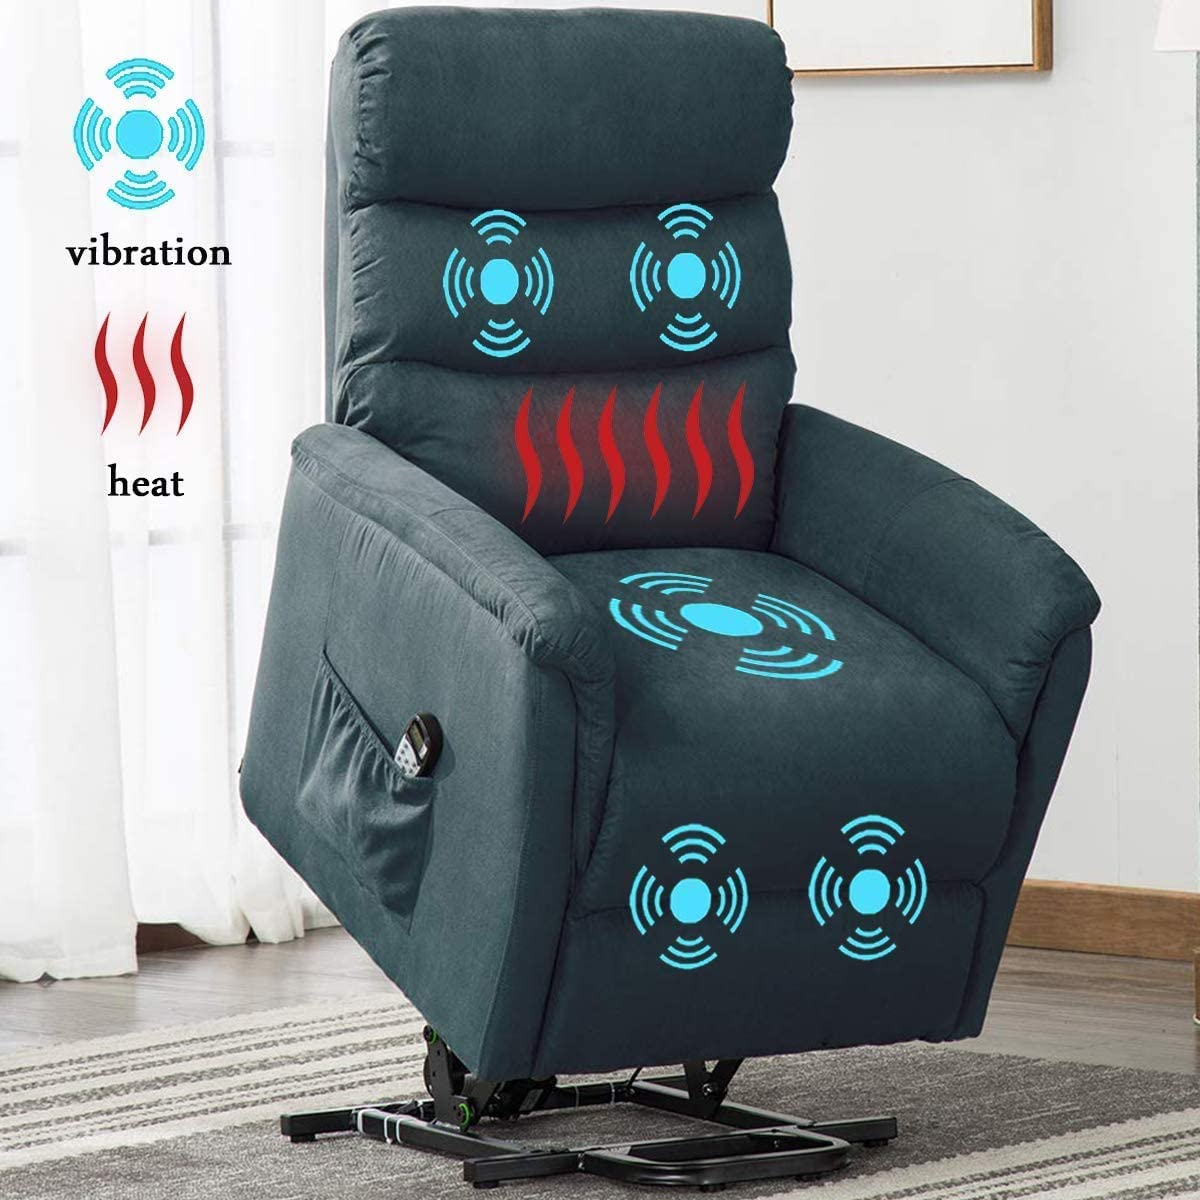 Bonzy Home Remote Control Recliner Chair with Massage Heat and Vibration- Electric Powered Lift Recliner Chair – Home Theater Seating – Bedroom Living Room Chair Recliner Sofa for Elderly Blue